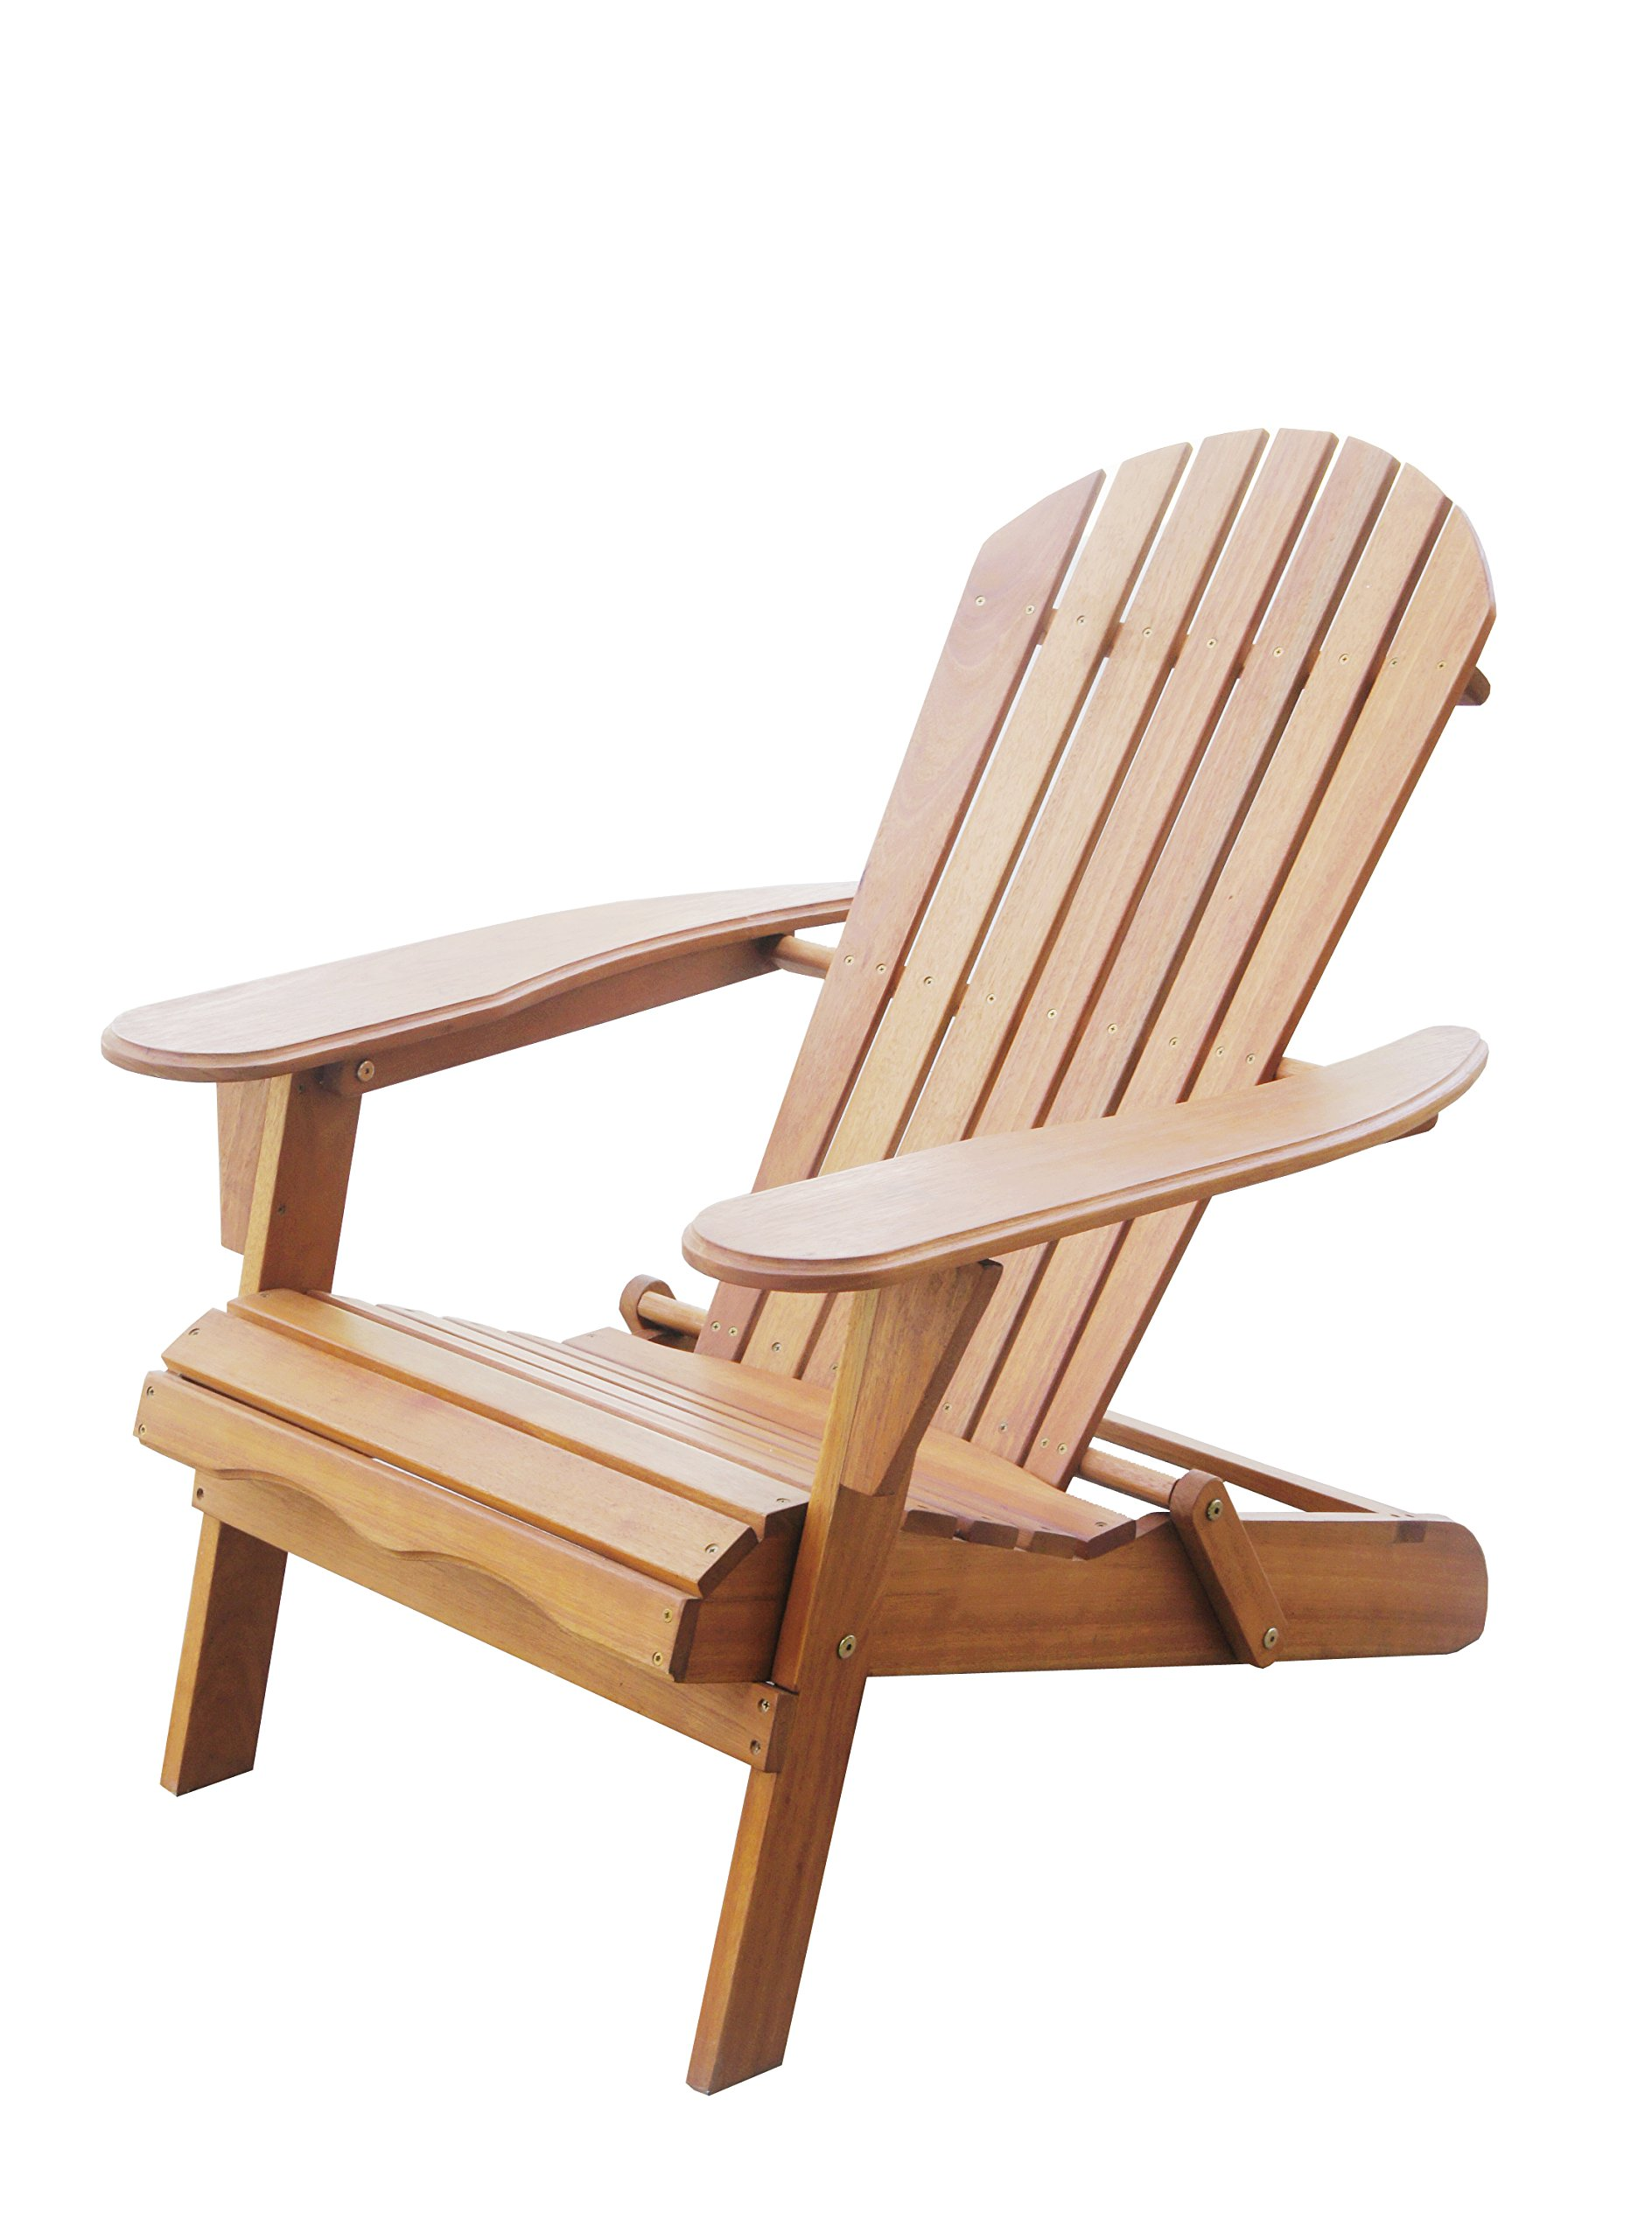 "Amayo Home Solid Eucalyptus Wood Foldable Adirondack Chair in Natural Color. Ergonomic Design & Can be Folded for Storage or Bringing to picnics - 100% EUCALYPTUS WOOD - won't splinter, warp or rot; FOLDS CONVENIENTLY for storage when not in use or in between seasons; HOLDS up to 350lbs LIGHT-WEIGHT DESIGN make it easy to move from place to place (23lbs); EASY TO ASSEMBLE with final dimensions measuring 35"" tall x 35/55.1"" deep x 31.3"" wide and weighing 23lbs - patio-furniture, patio-chairs, patio - 813EK3p%2BZlL -"